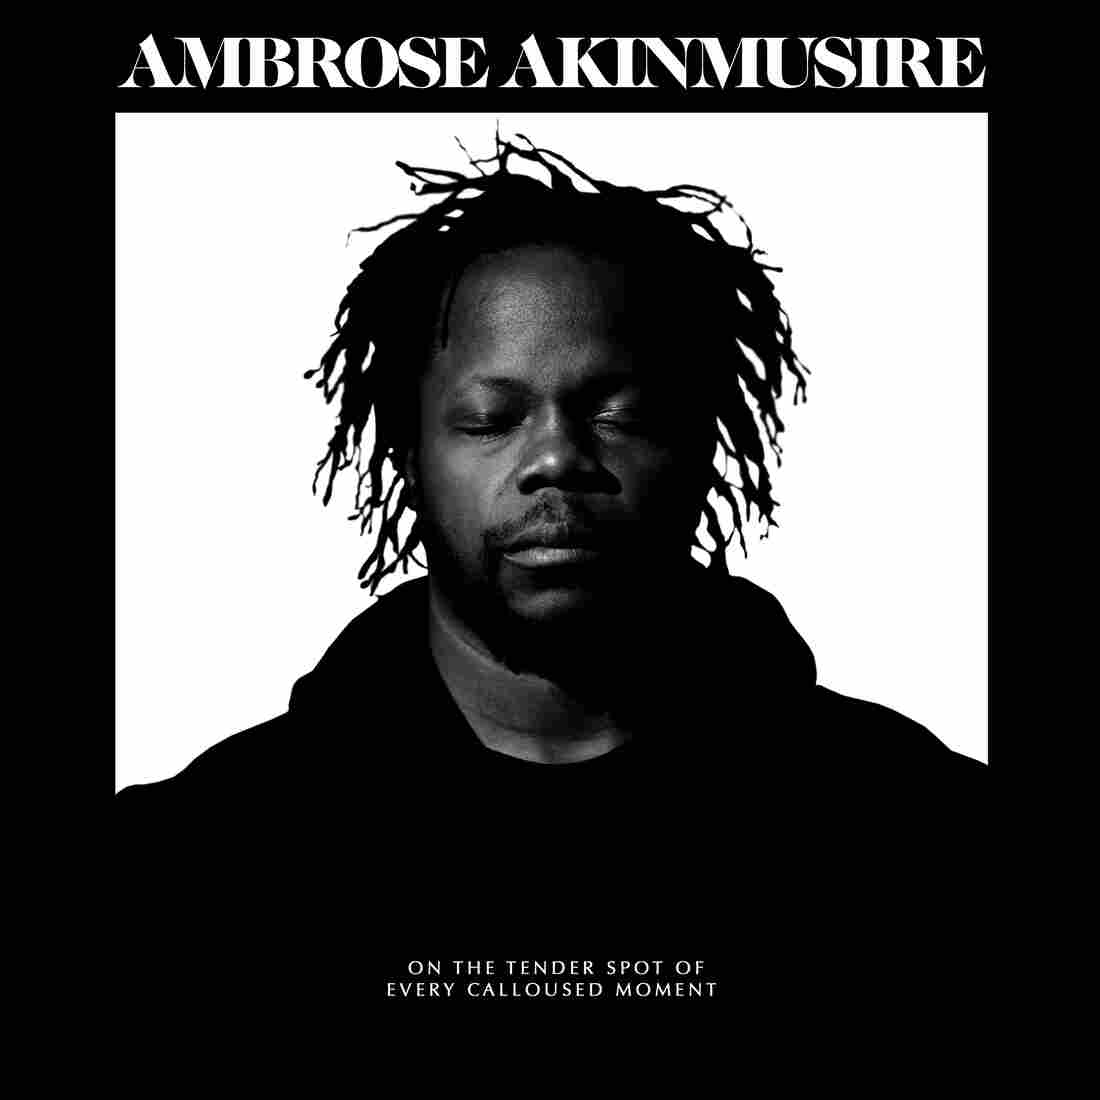 Ambrose Akinmusire, on the tender spot of every calloused moment